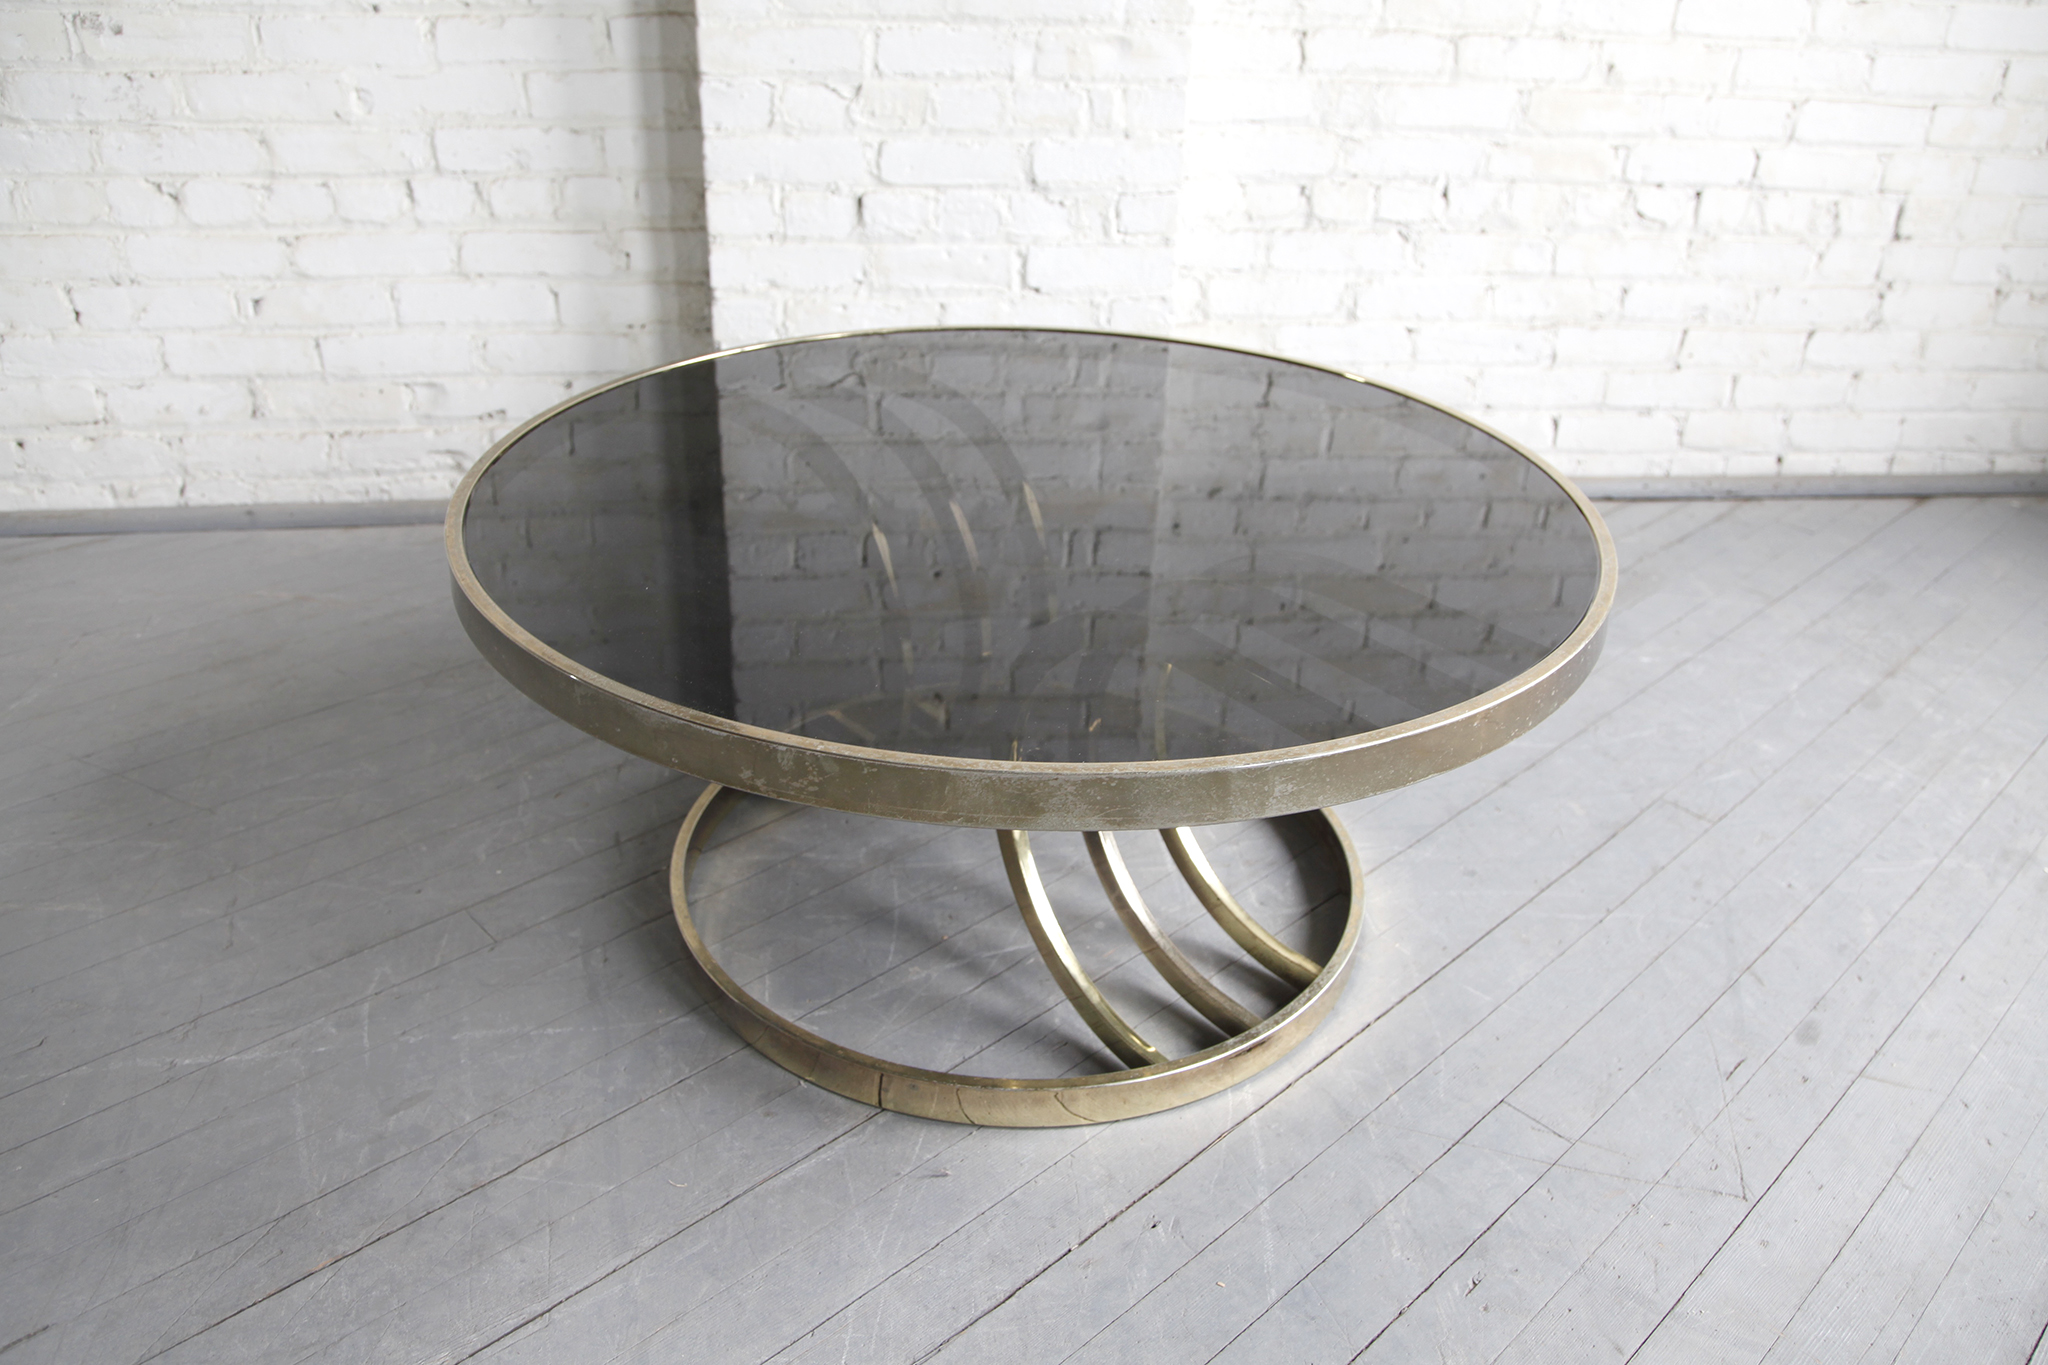 SOLD Mid century modern Hollywood regency round brass & glass